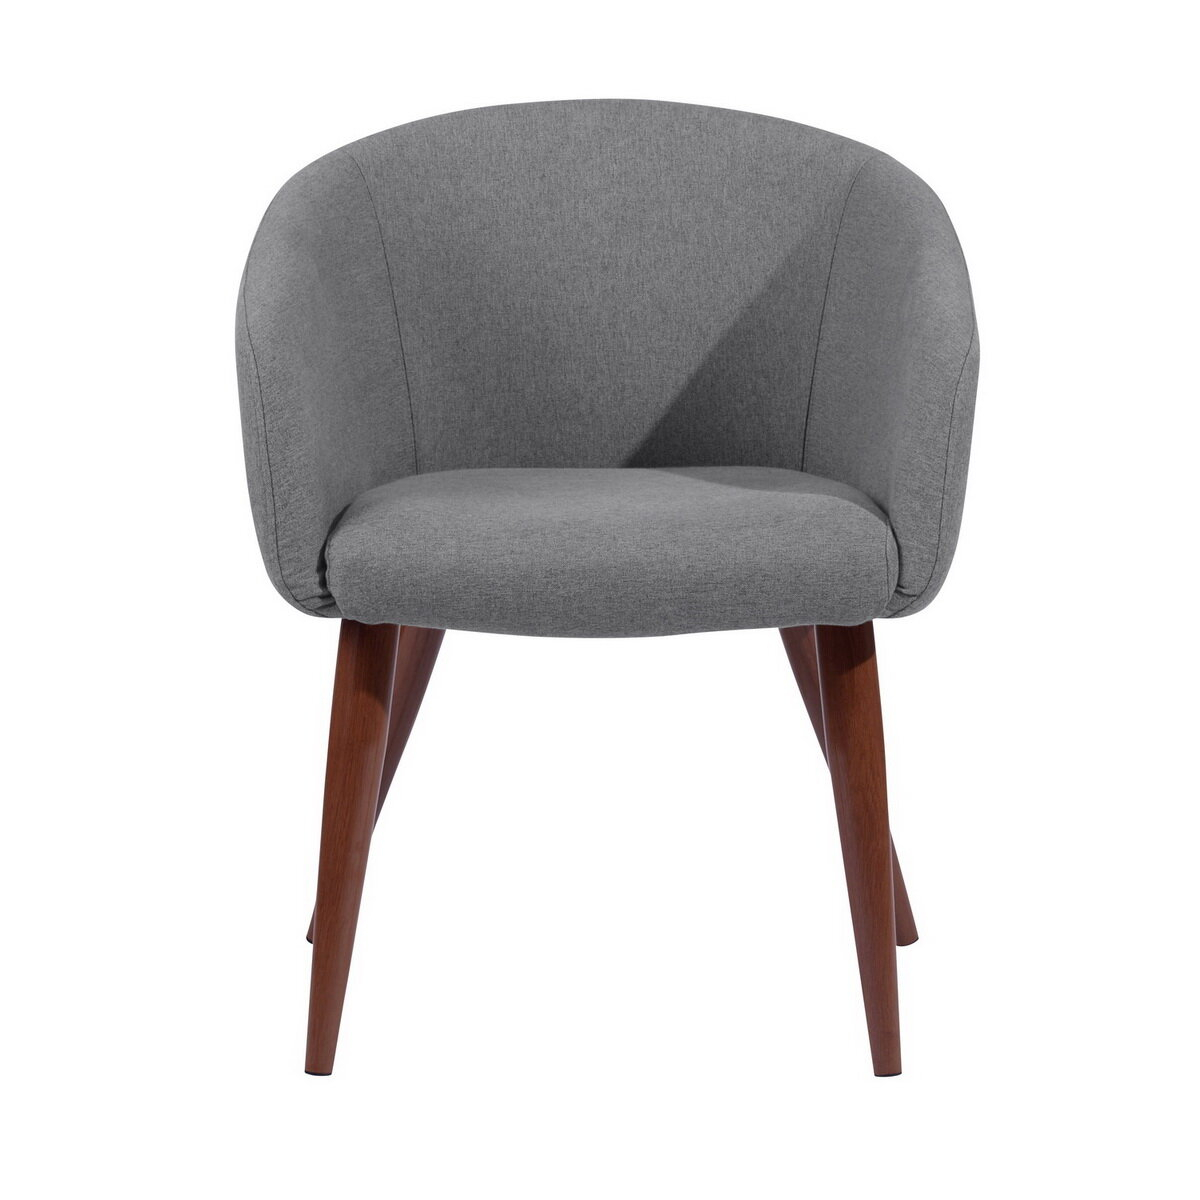 Boyden Upholstered Arm Chair Pertaining To Boyden Armchairs (View 3 of 15)